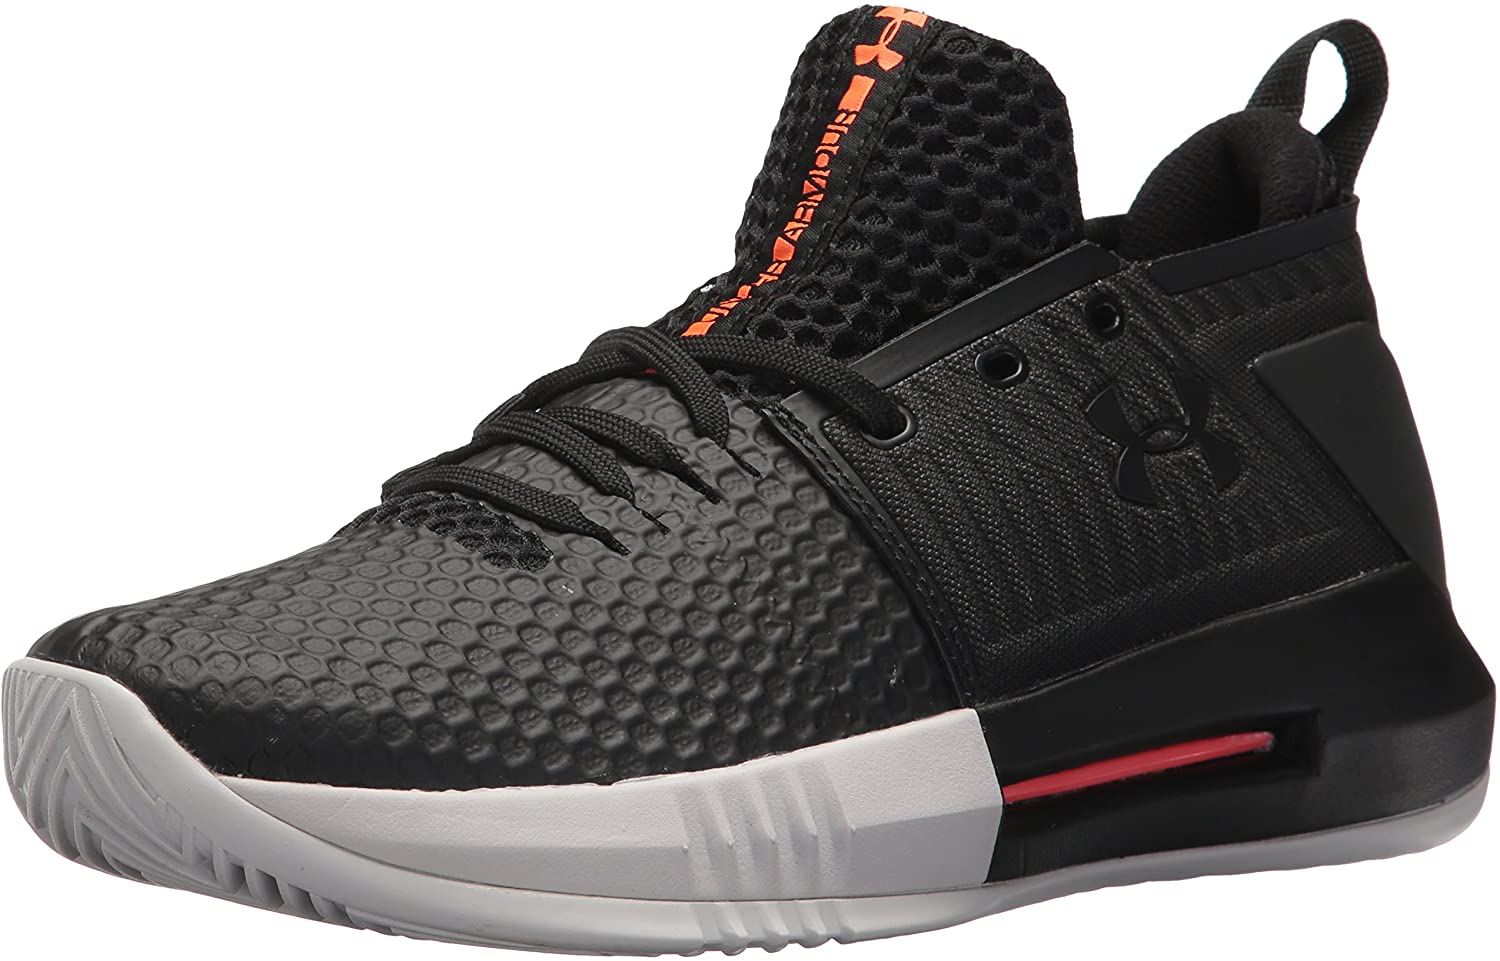 Under Armour UA Drive 4 Low